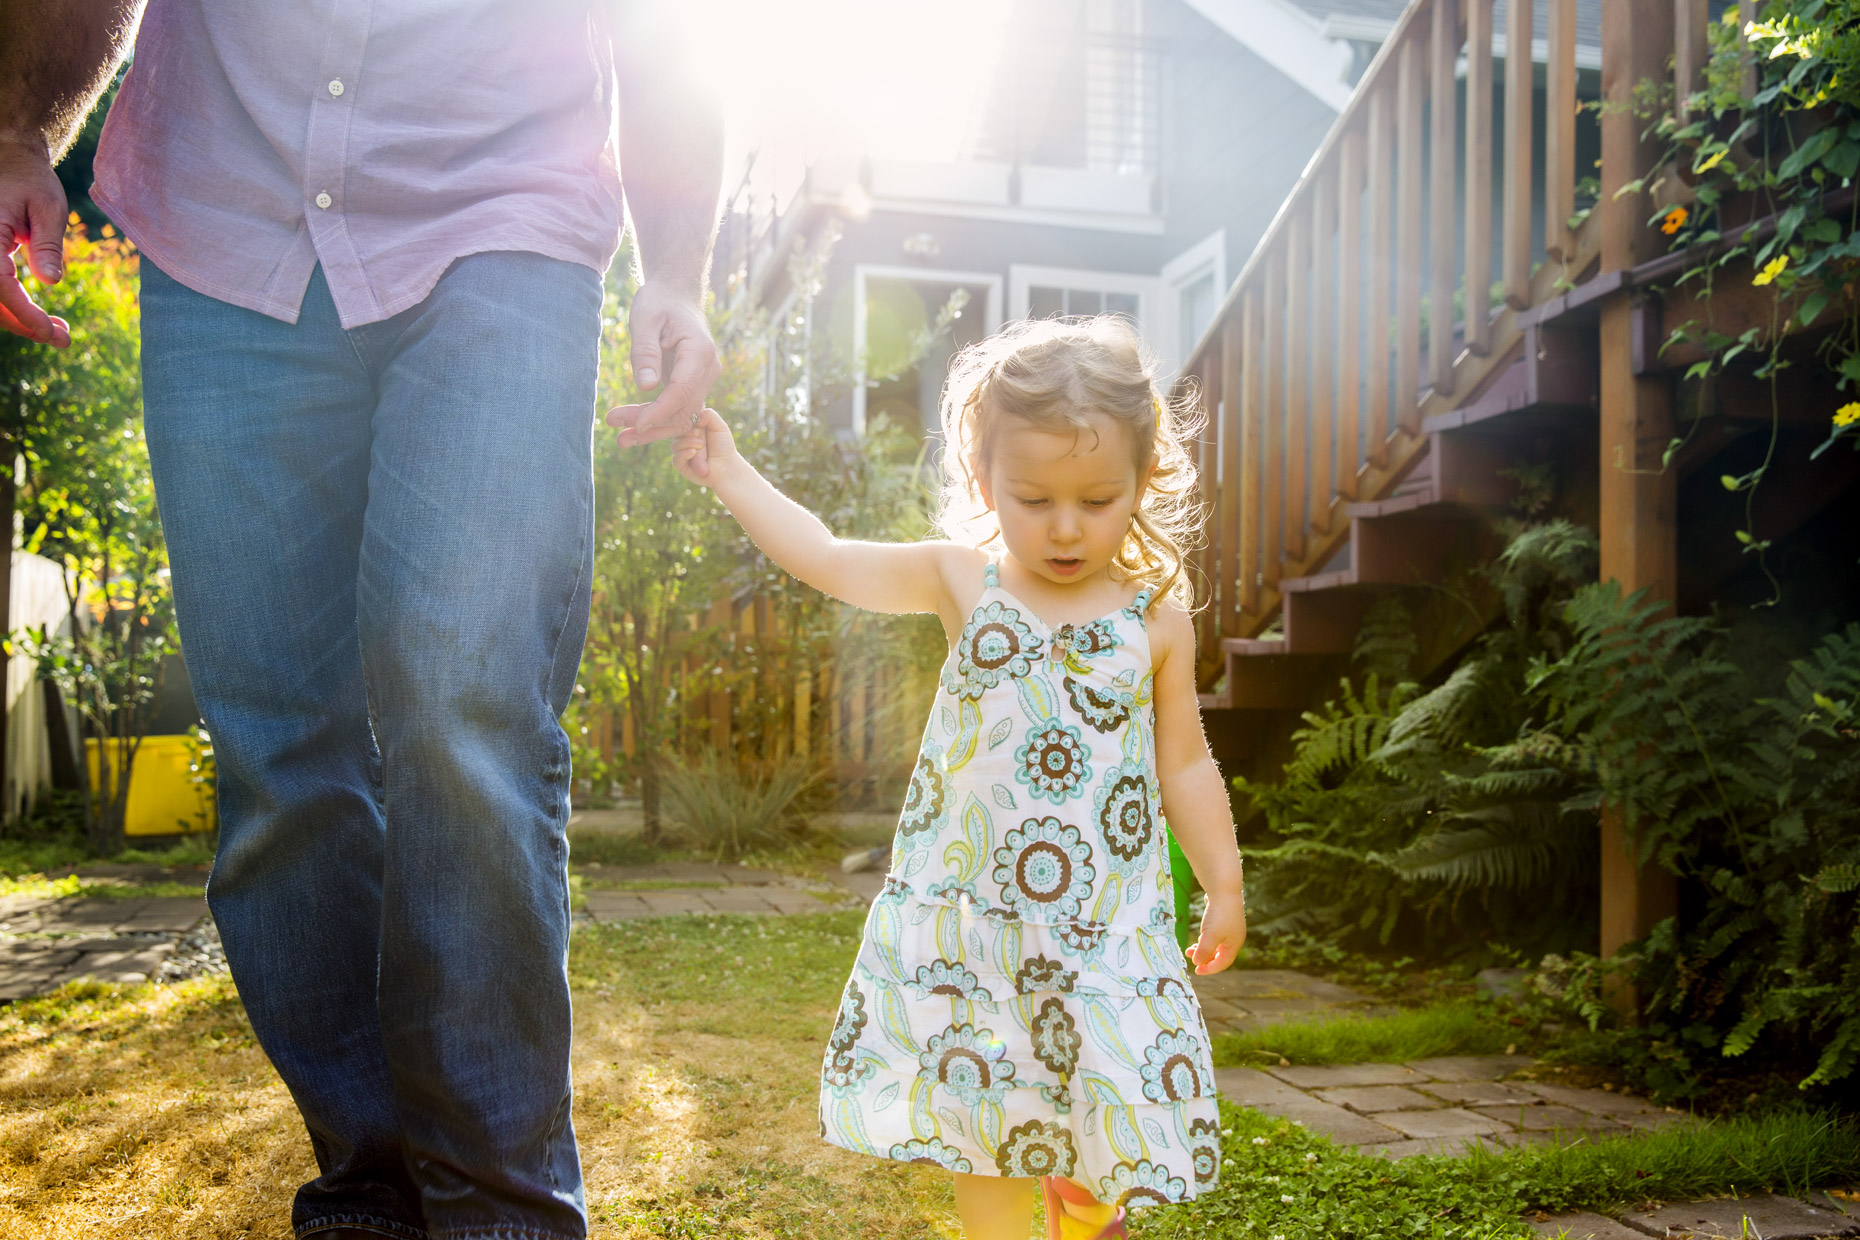 Girl walking in sunny garden holding dad